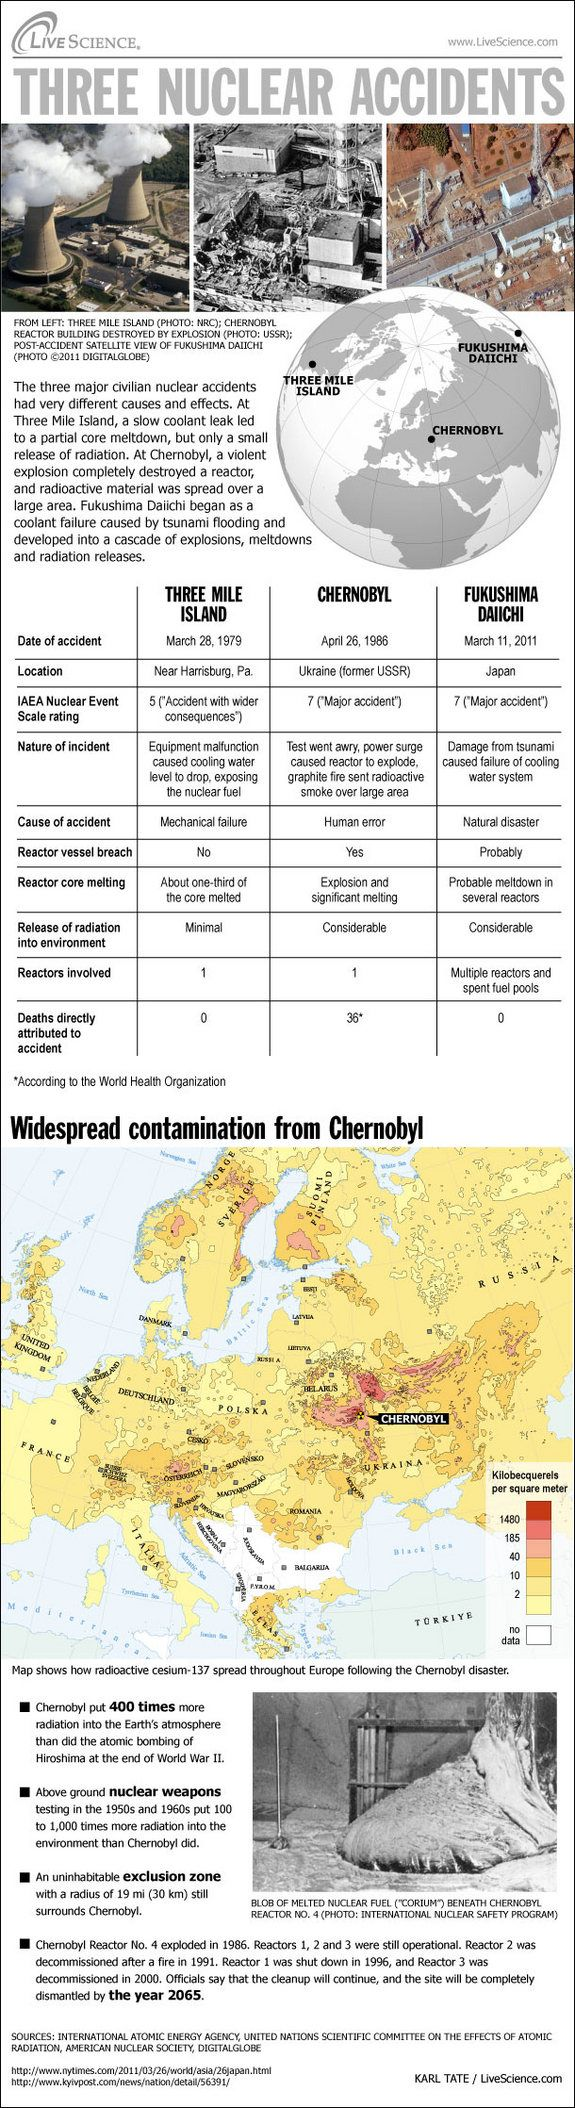 was chernobyl the most detrimental nuclear disaster in nuclear history? essay One of the most famous stories about nuclear disaster is the chernobyl nuclear plant disaster in soviet union in 1986, and another recent incidence is the fukushima daiichi nuclear plant in japan in 2011.